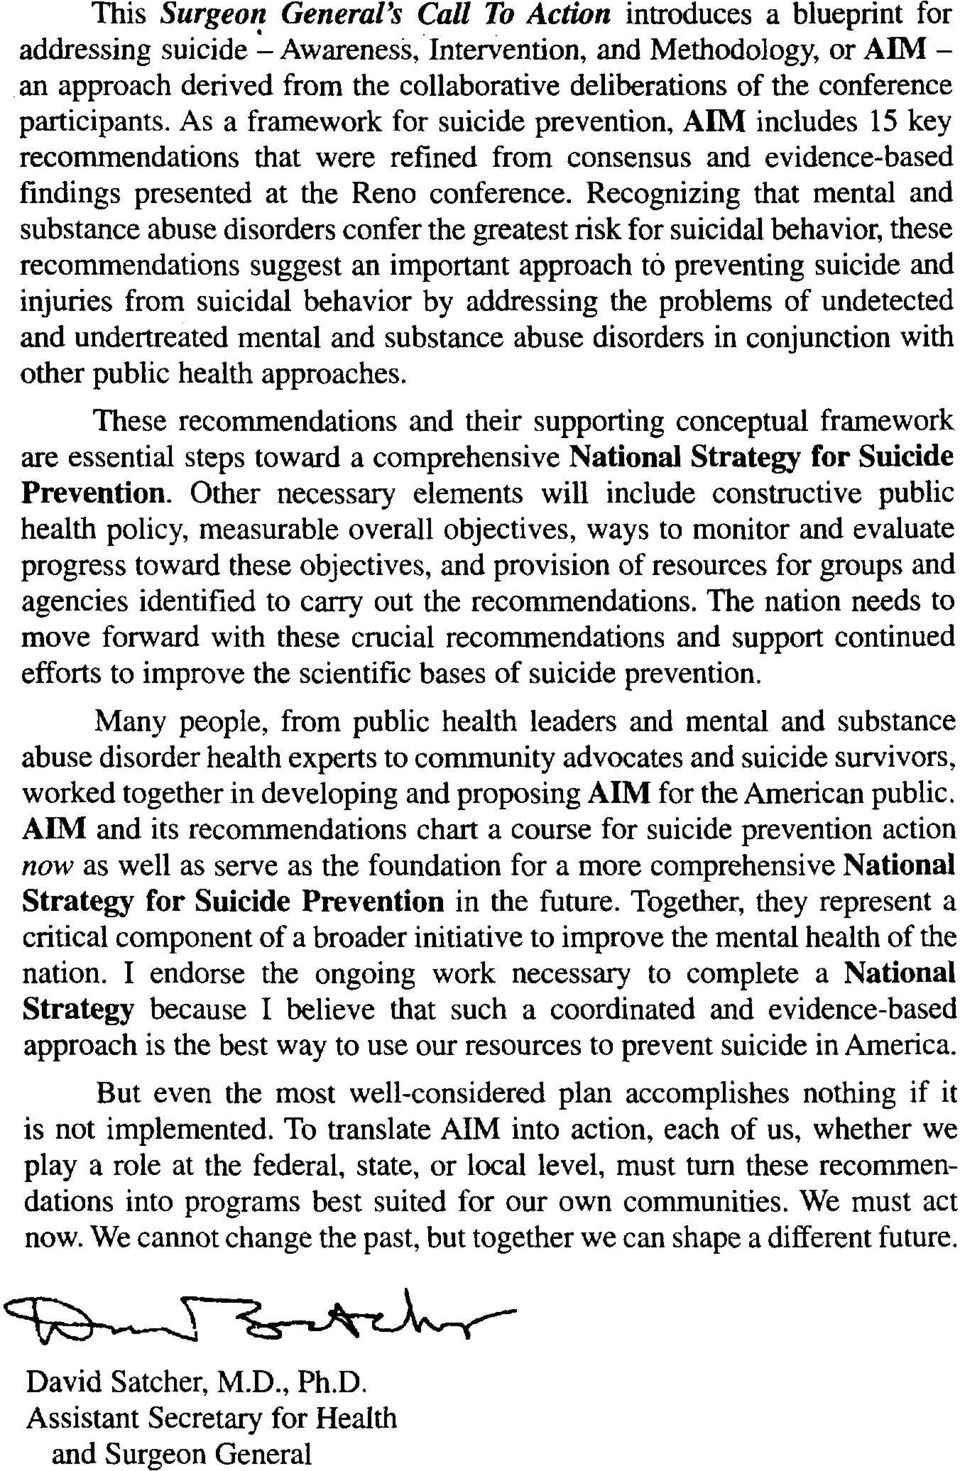 participants. As a framework for suicide prevention, AIM includes 15 key recommendations that were refined from consensus and evidence-based findings presented at the Reno conference.